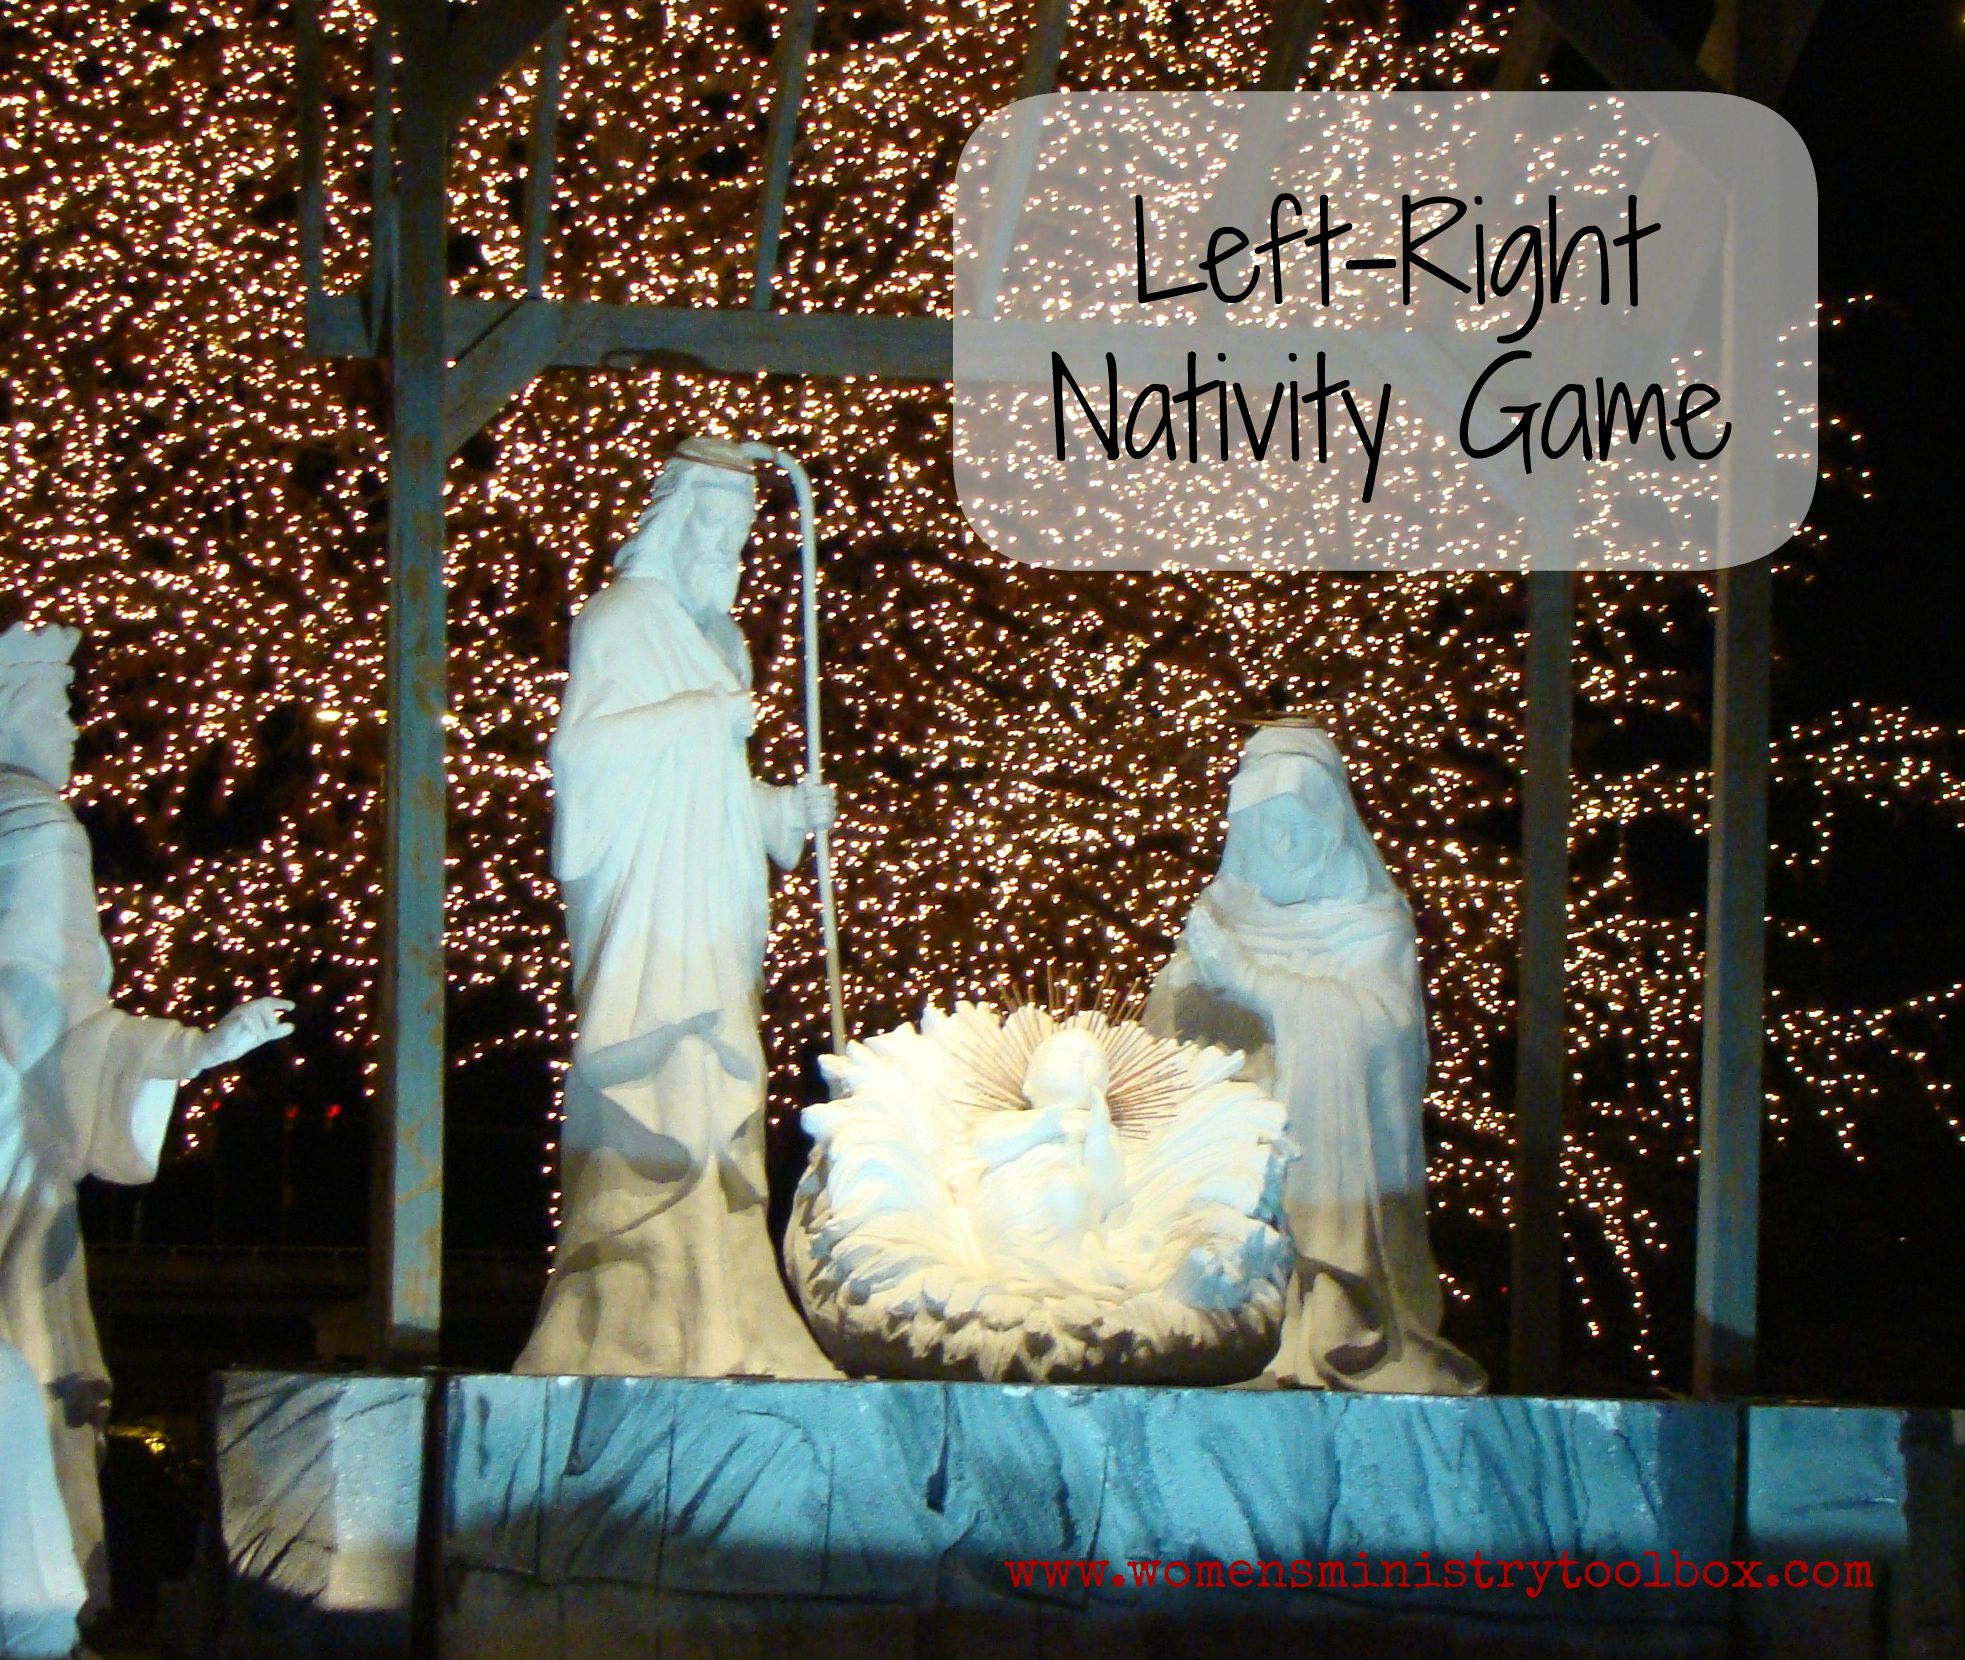 Left Right Nativity Game   Christmas gift exchange games ...